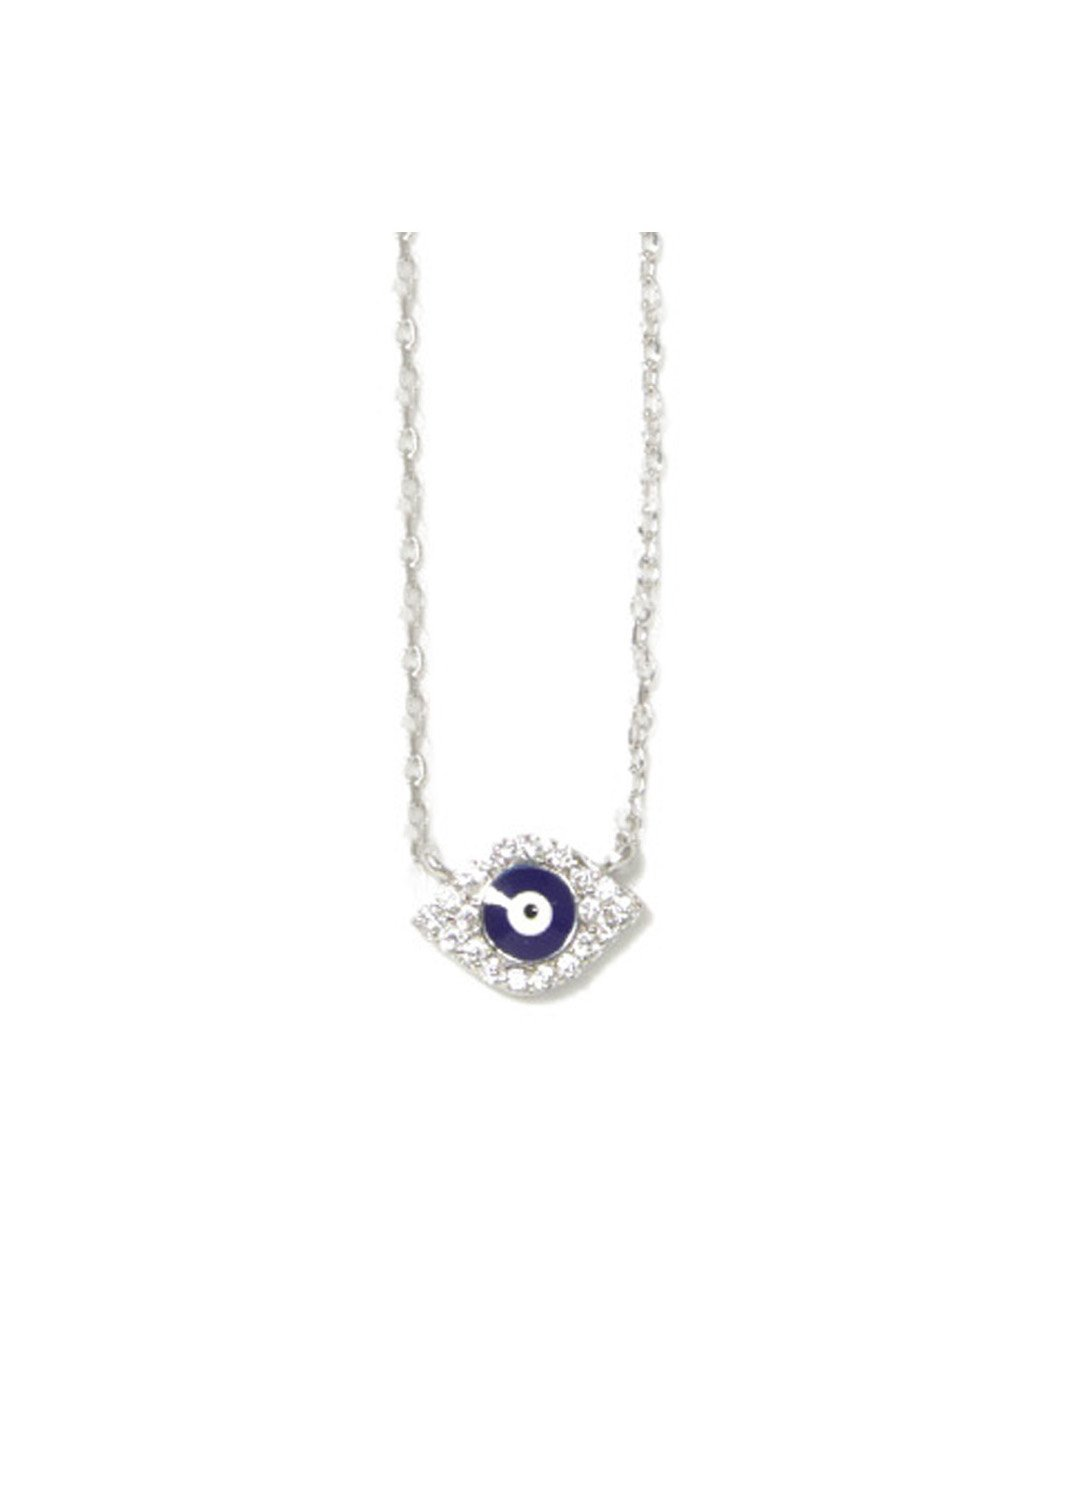 Blue evil eye silver necklace with zircon